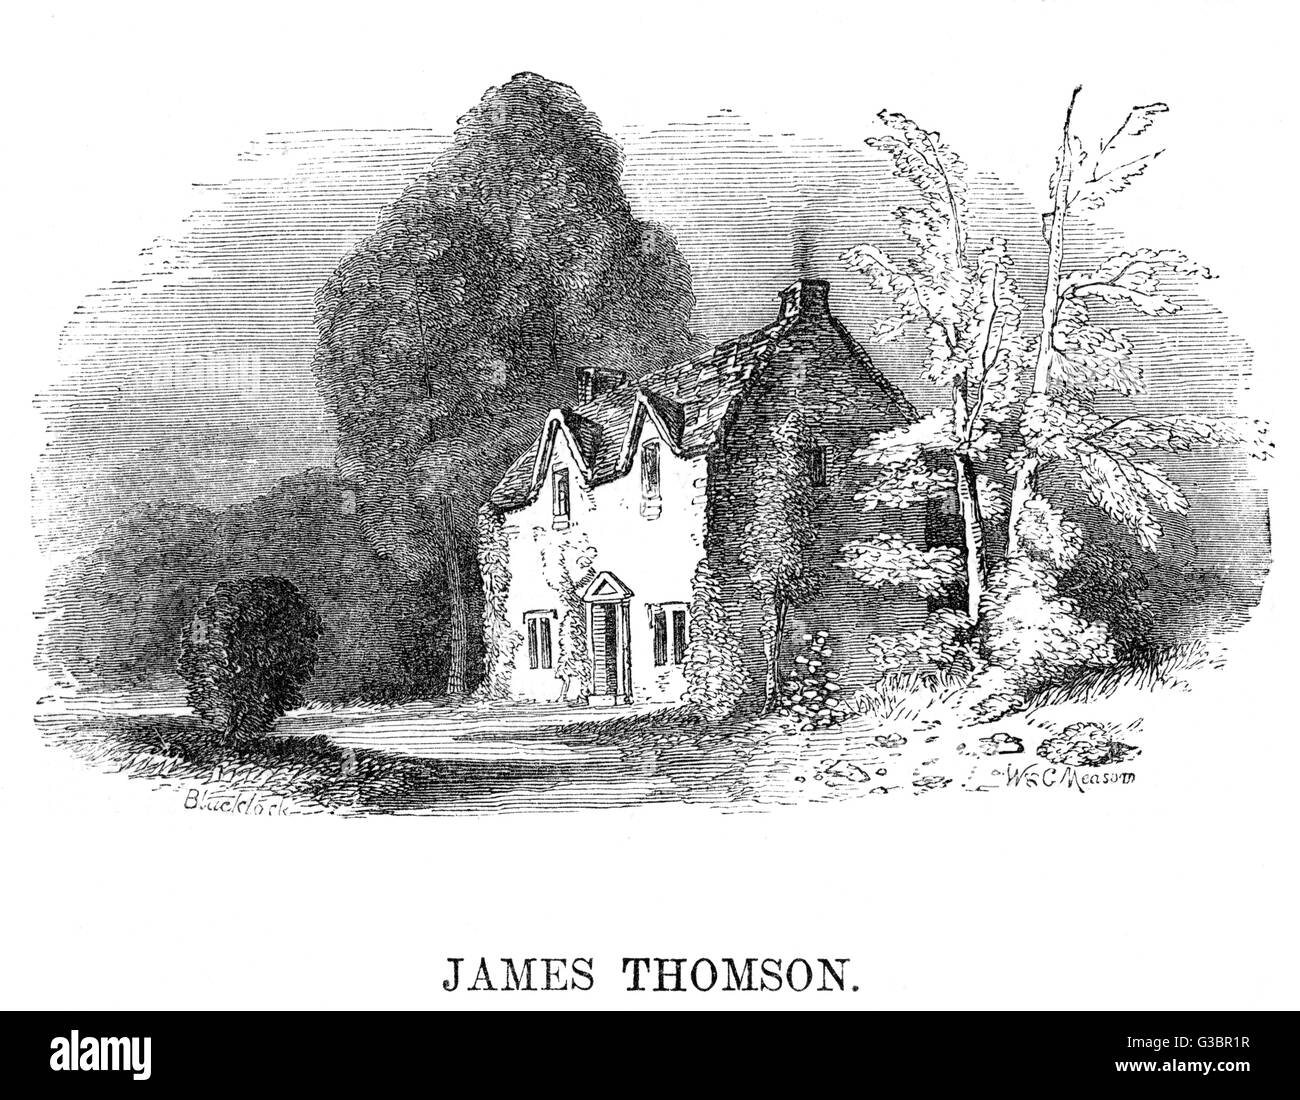 The cottage of the poet James  Thomson in Kew Lane, west  London        Date: 18TH CENTURY - Stock Image